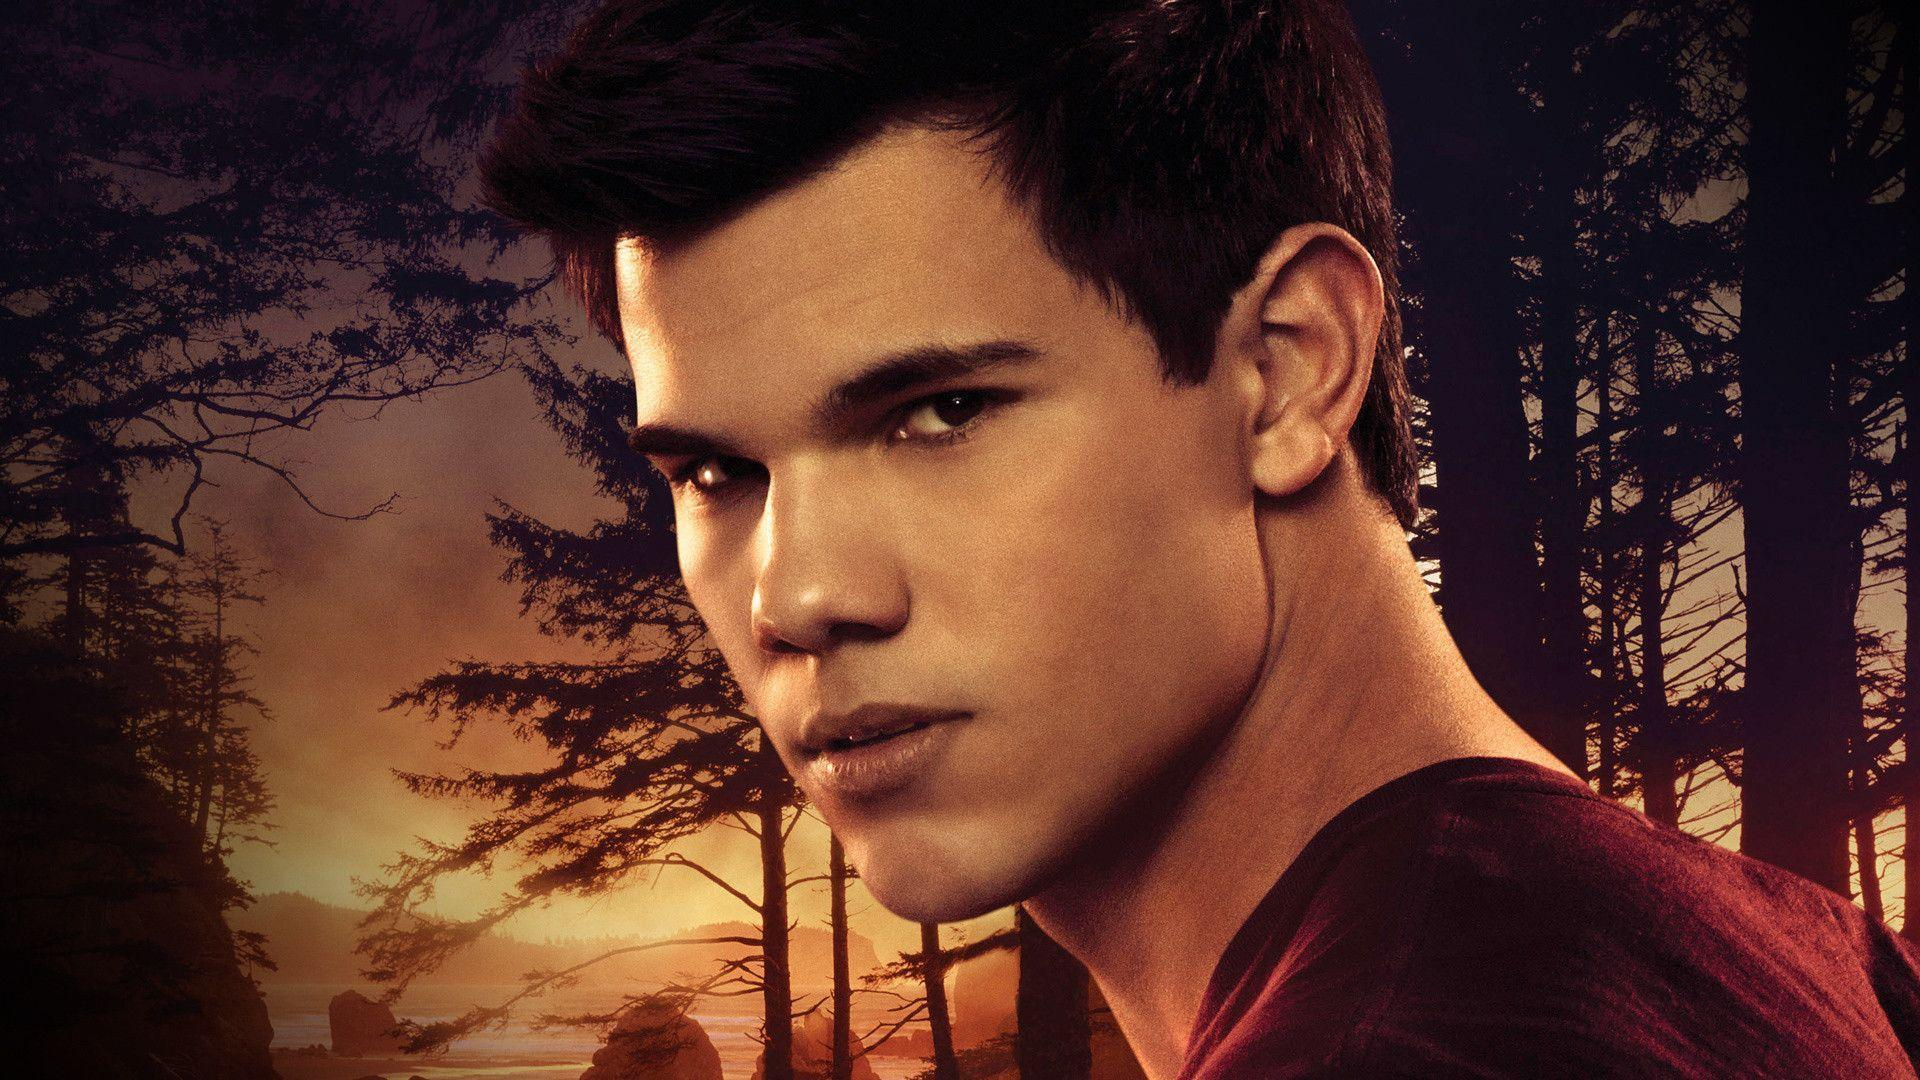 Twilight Wallpapers Jacob - Wallpaper Cave Taylor Lautner Movies